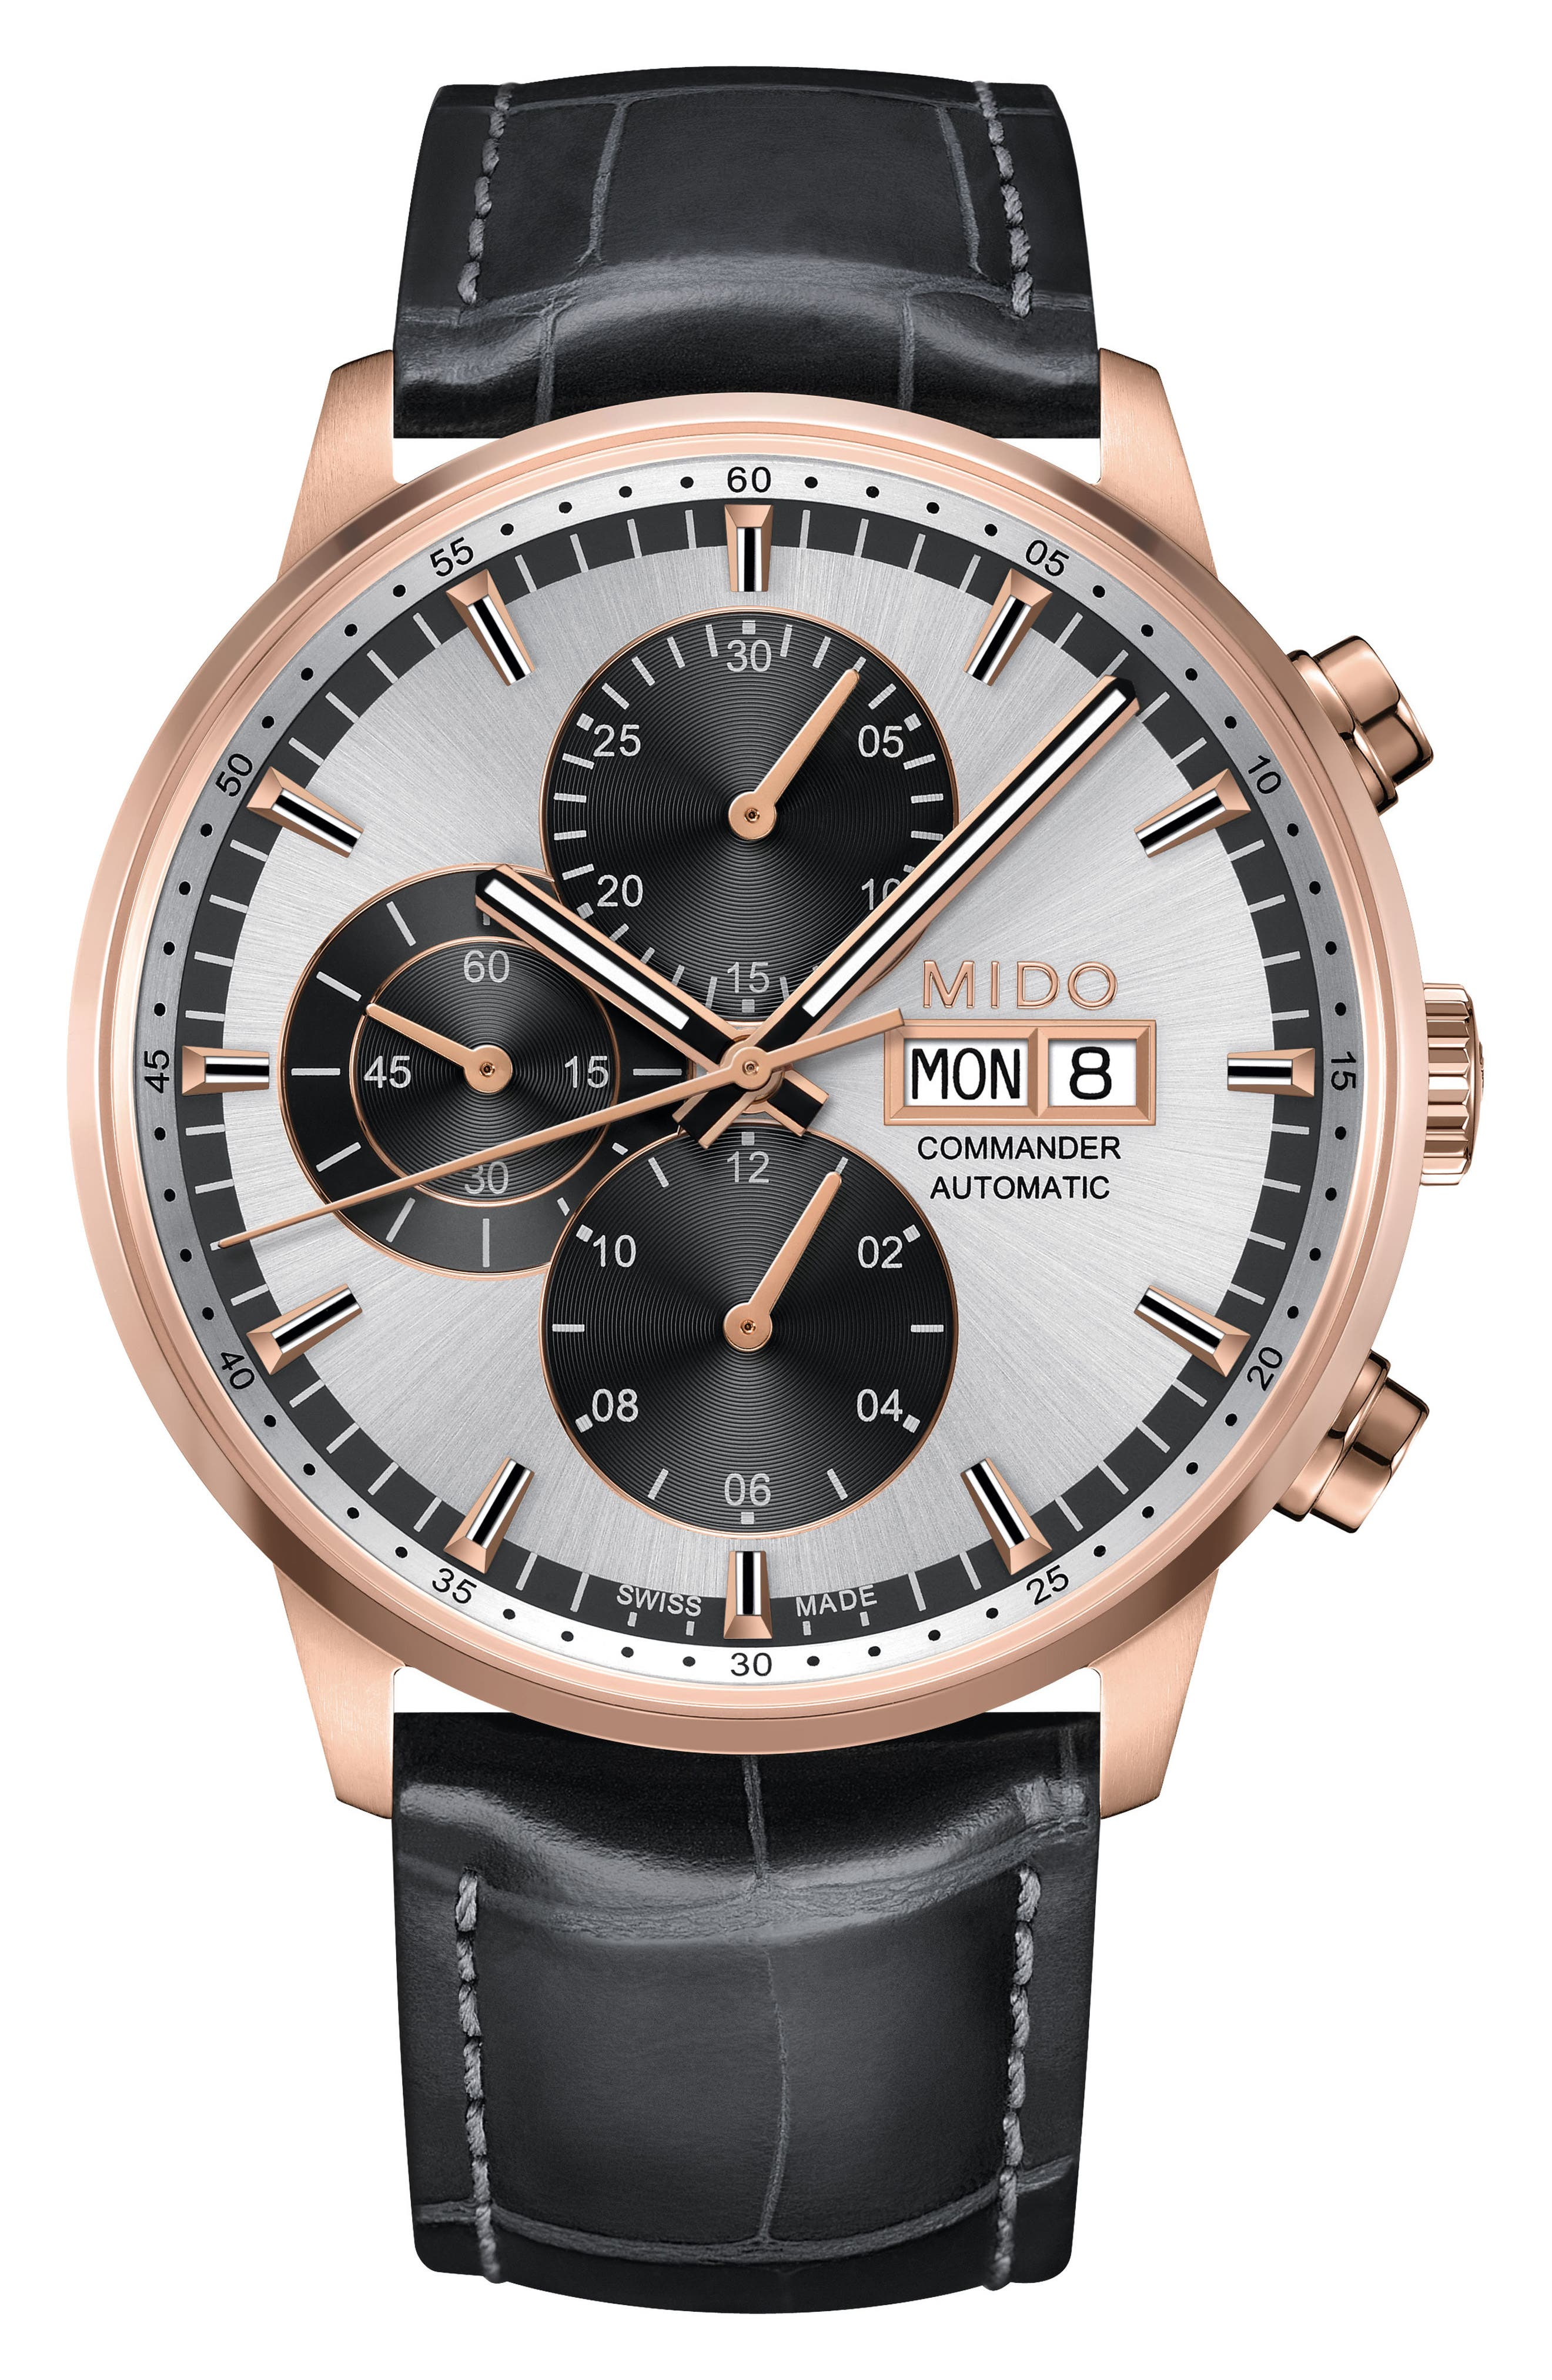 Main Image - Mido Commander Chronometer Leather Strap Watch, 42mm